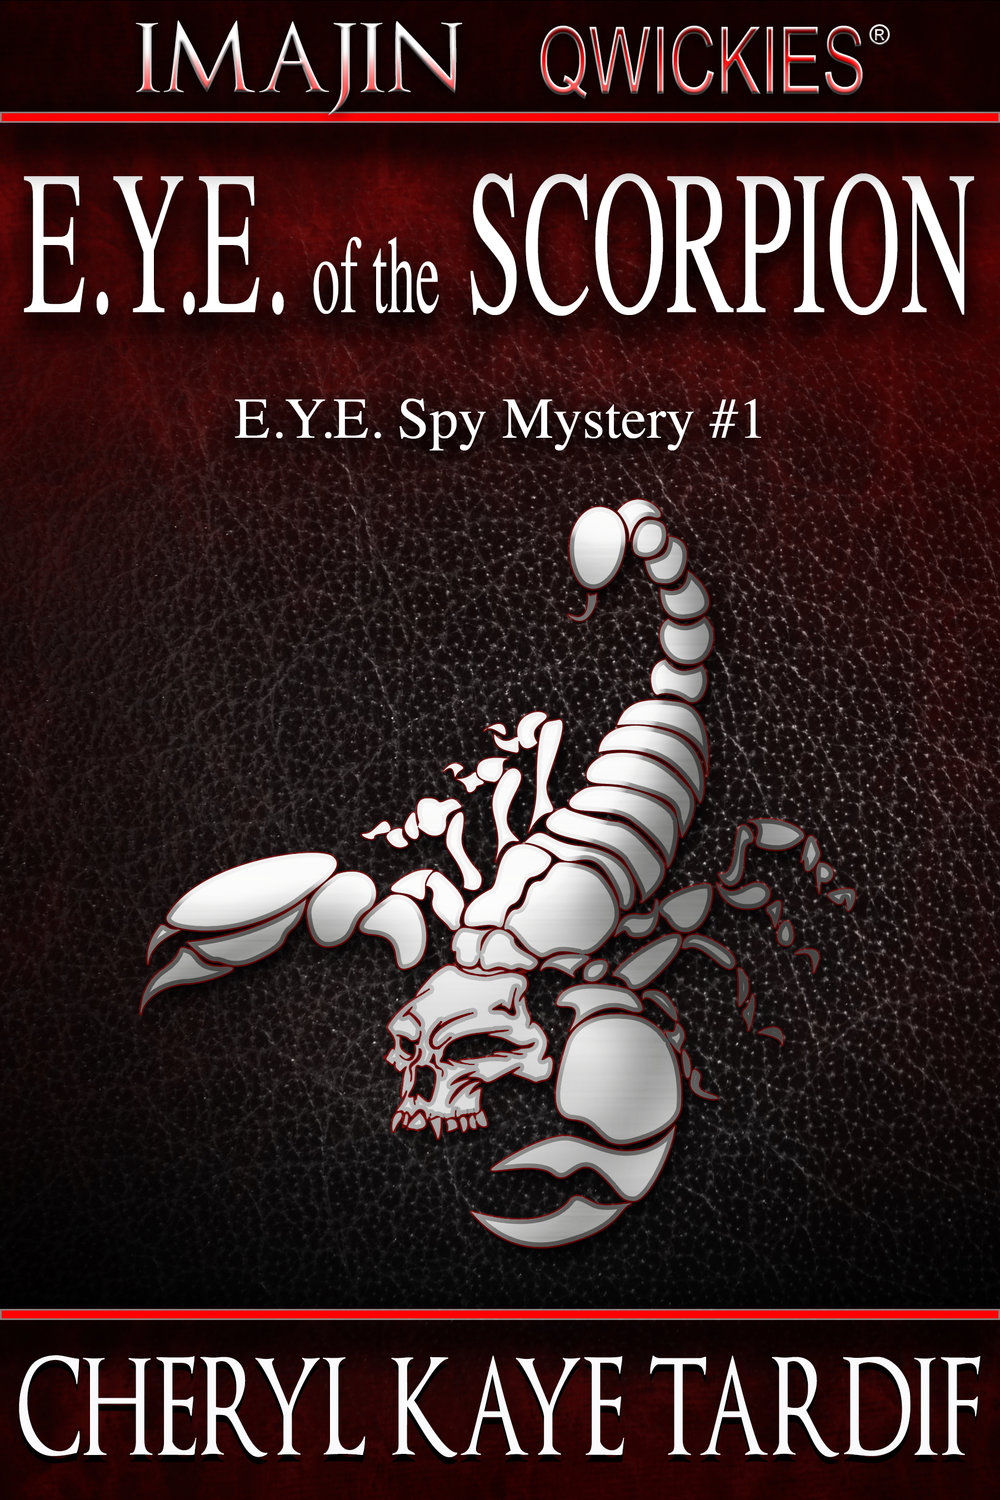 Here is your FREE ebook.  We hope you enjoy!  EAGLE E.Y.E. (#2) is on sale at Amazon & more! -